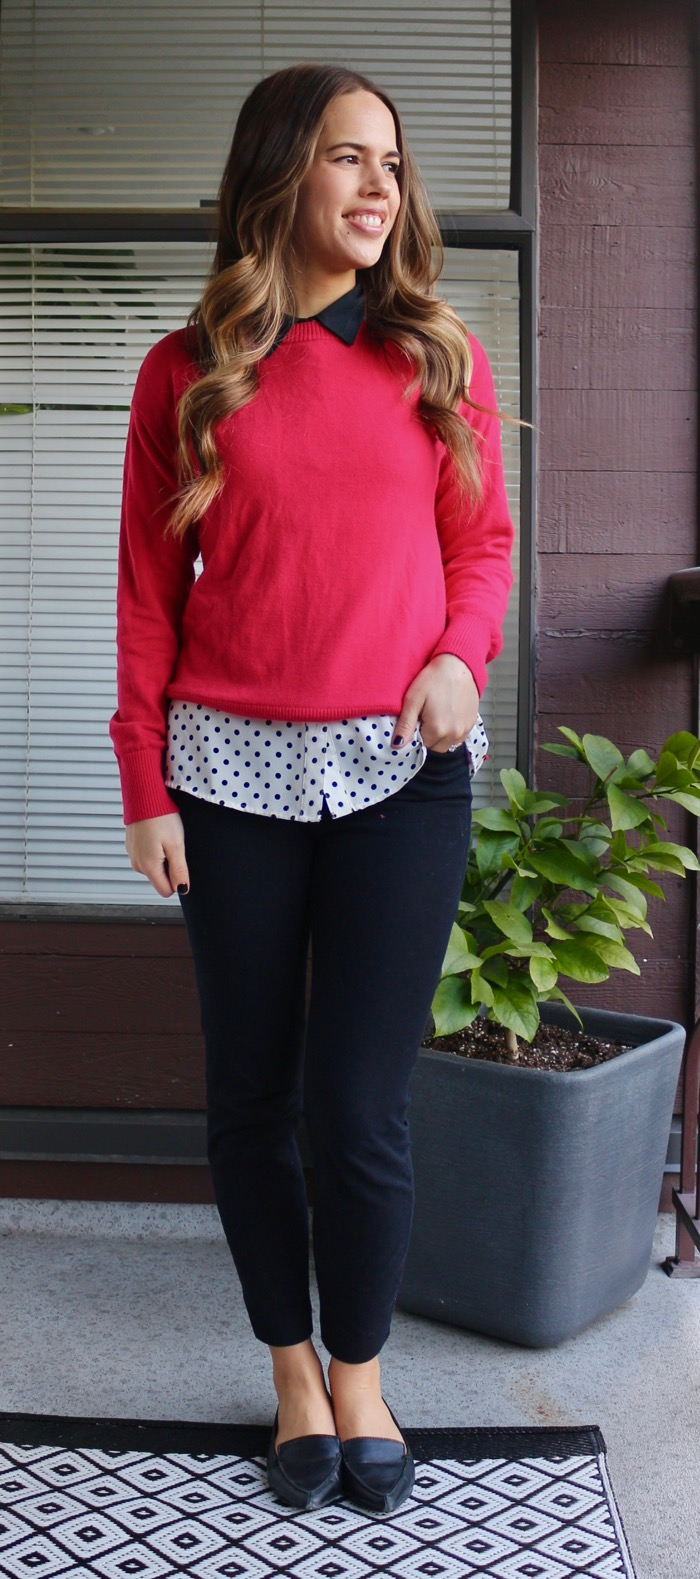 Jules in Flats - Red Sweater layered with Polka Dot Collared Blouse